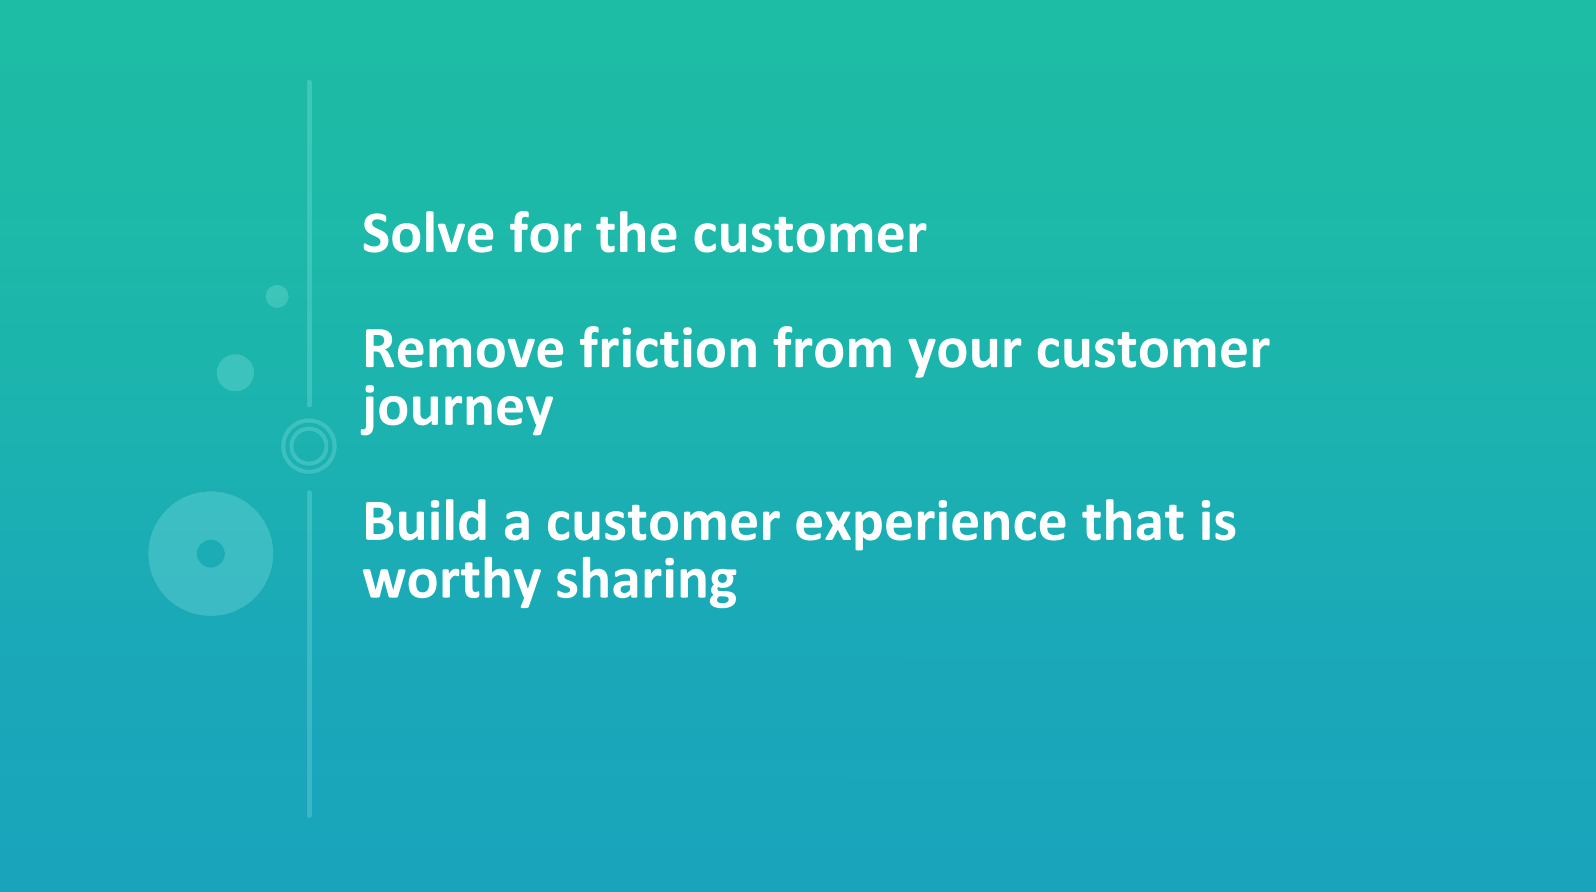 Improving your customer experience and reducing friction